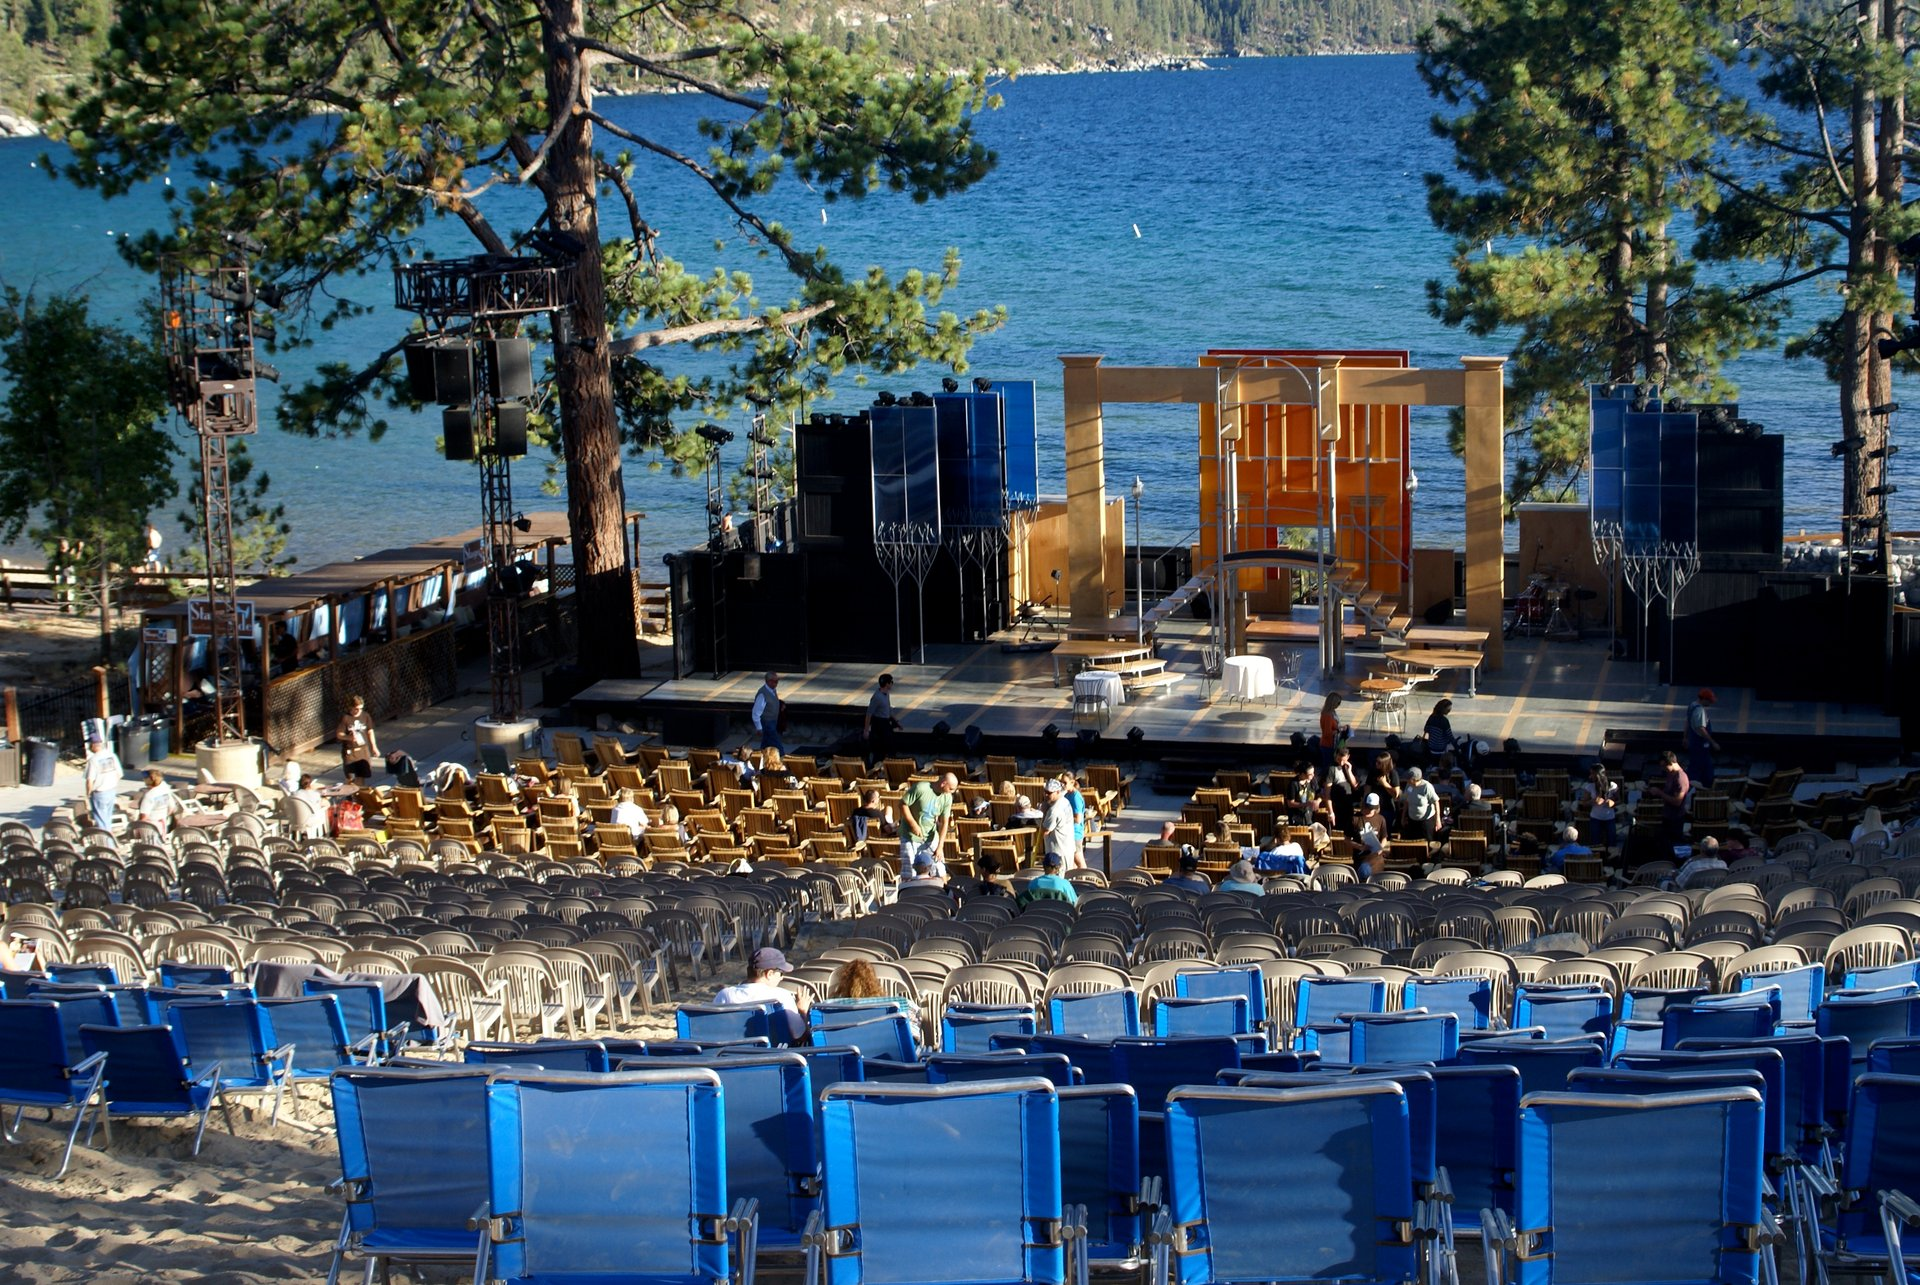 Lake Tahoe Shakespeare Festival in Lake Tahoe - Best Season 2020